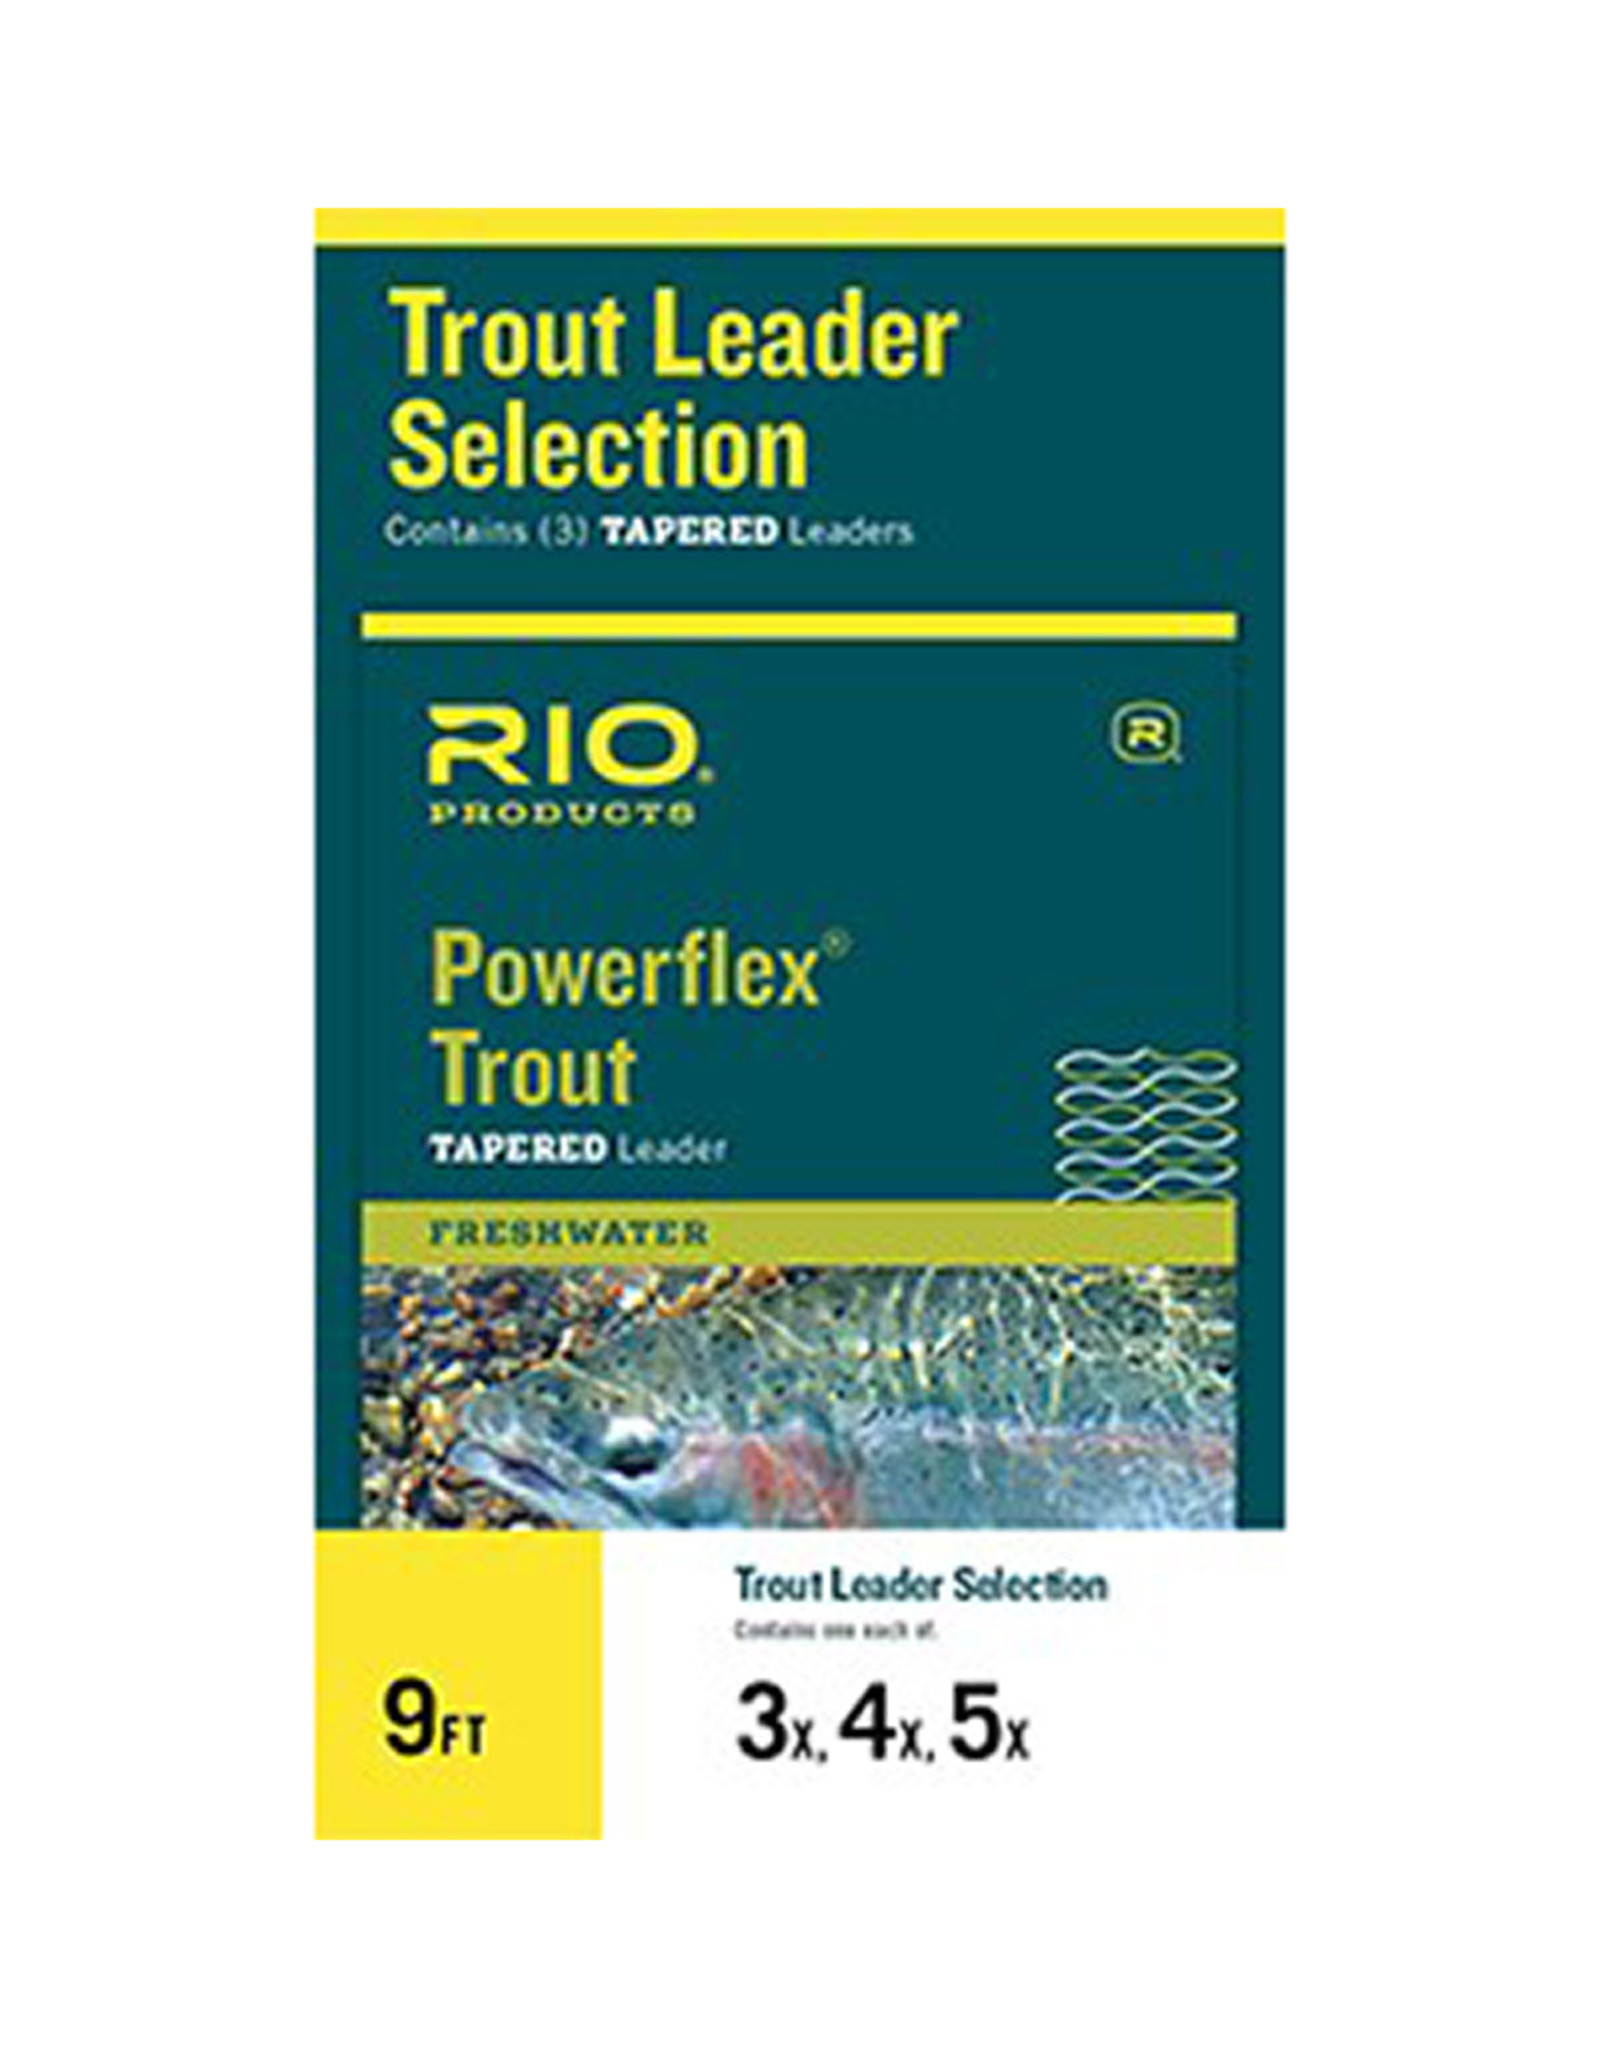 RIO Products Powerflex Trout 9ft Selection